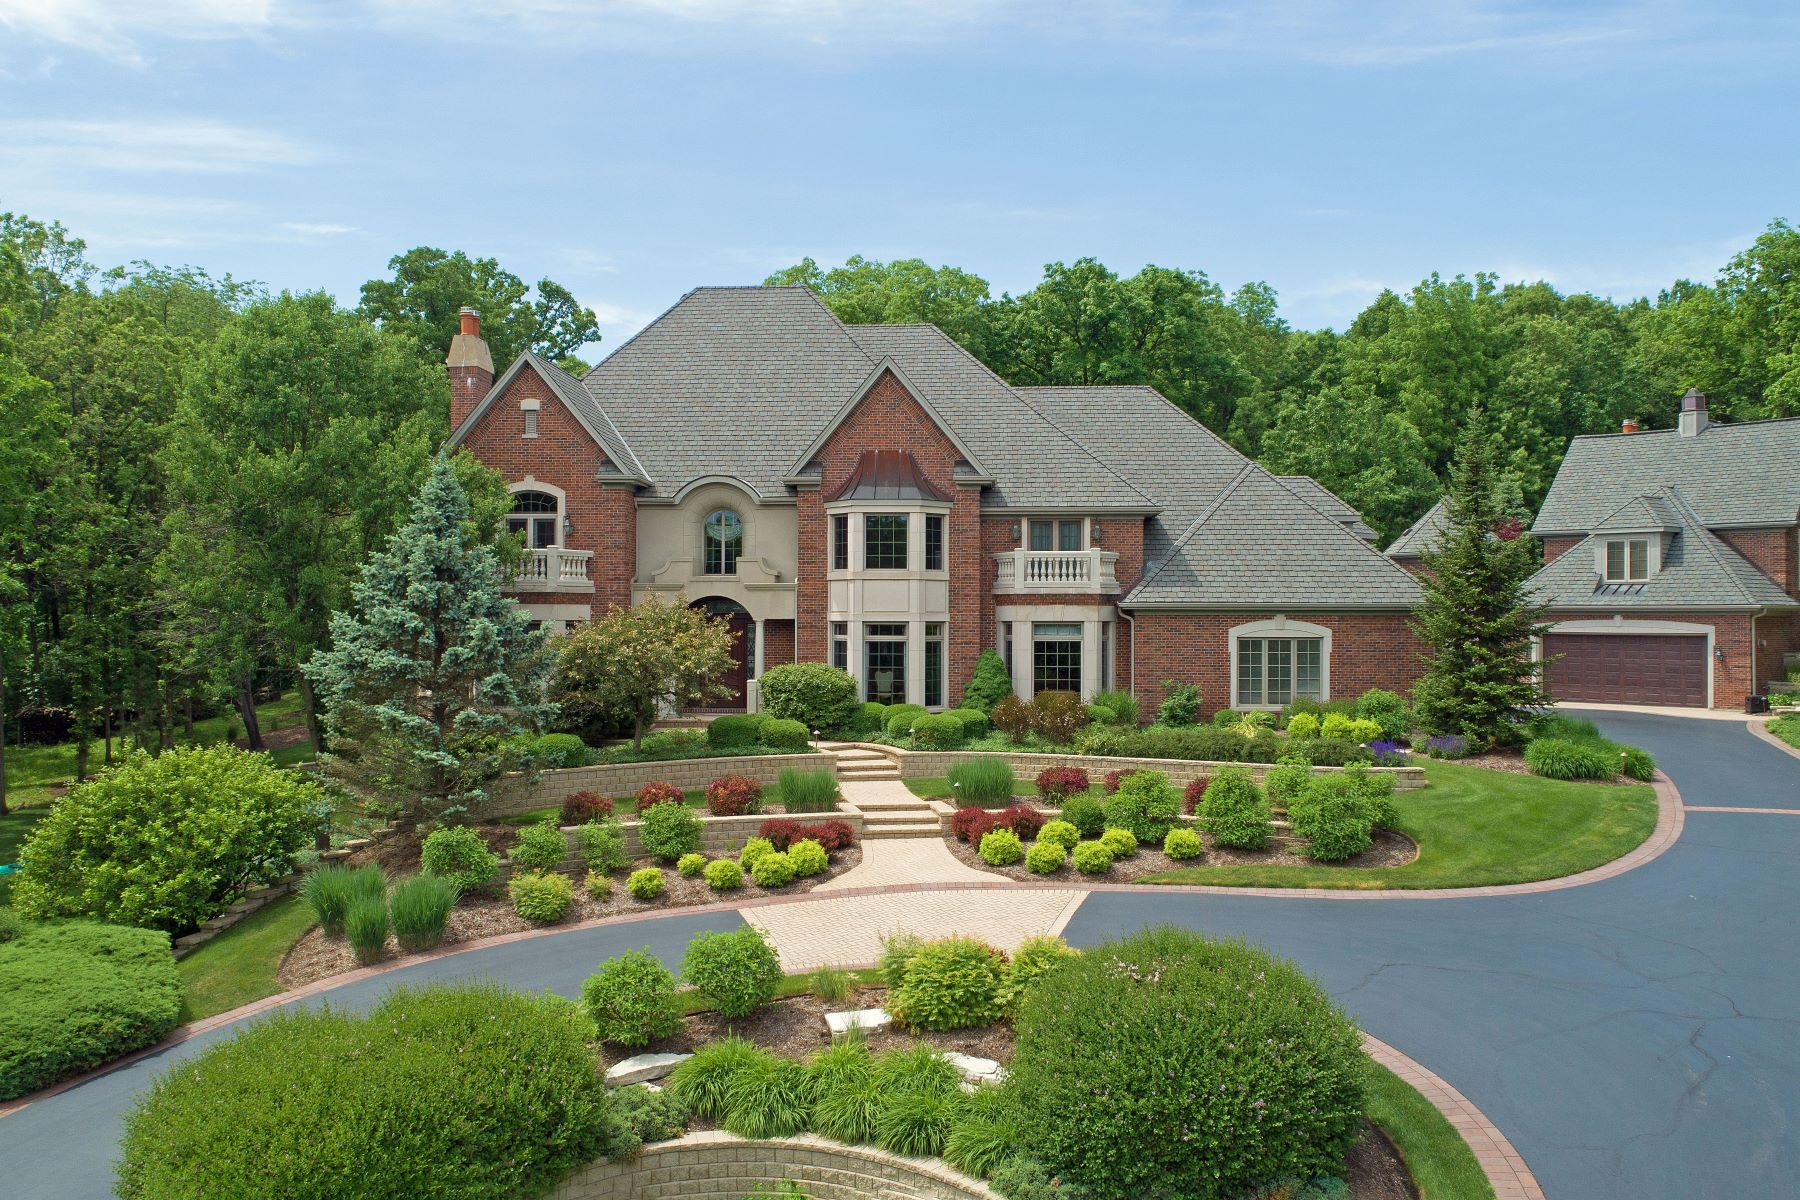 Single Family Homes for Sale at Tranquil gated estate 38w685 Forest Glen Court St. Charles, Illinois 60175 United States